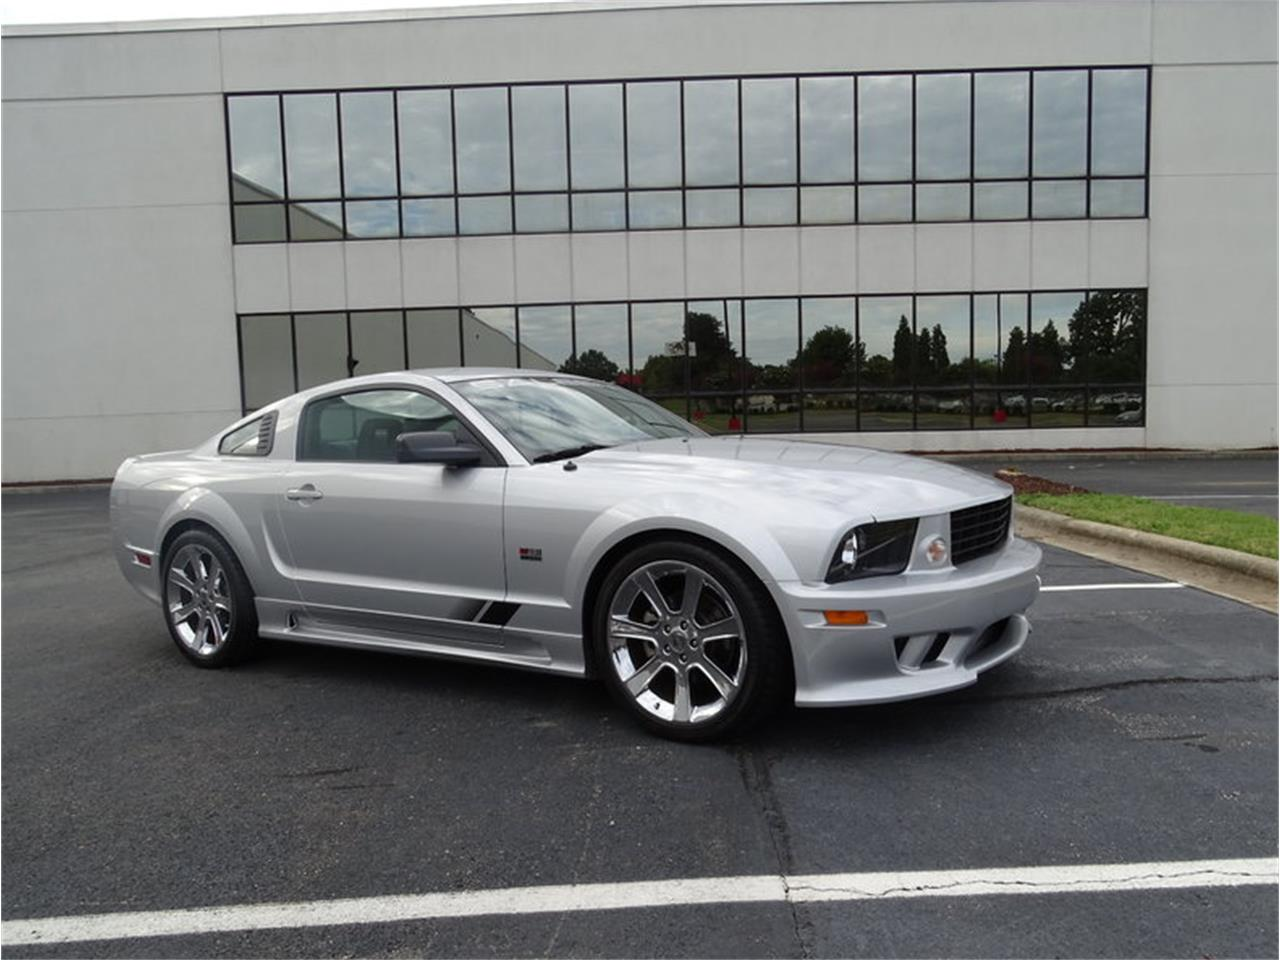 Large picture of 06 mustang gt m6xh